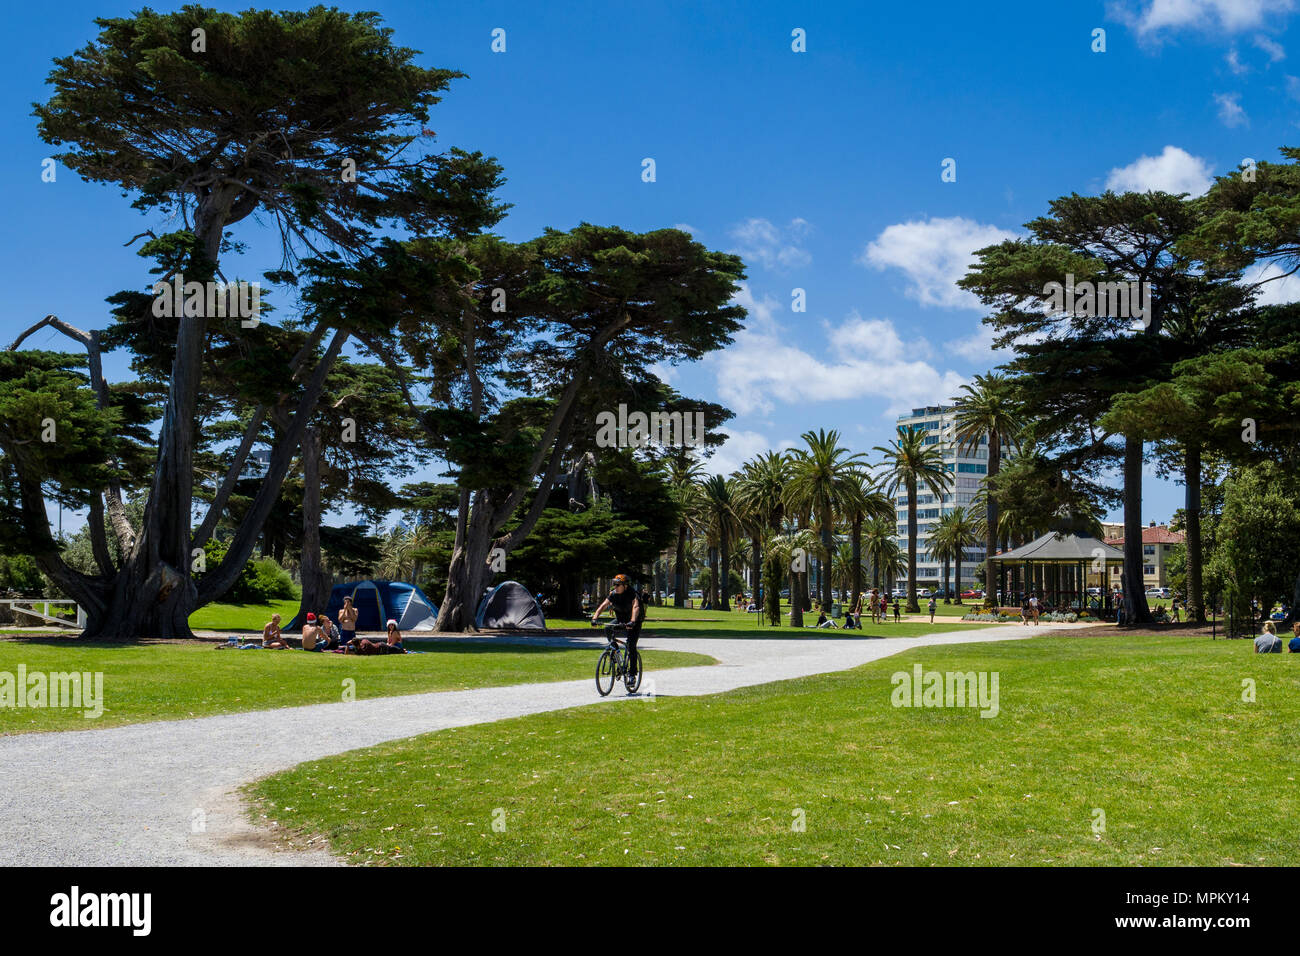 Christmas Camping Australia.People Cycling Camping And Relaxing In Catani Gardens On